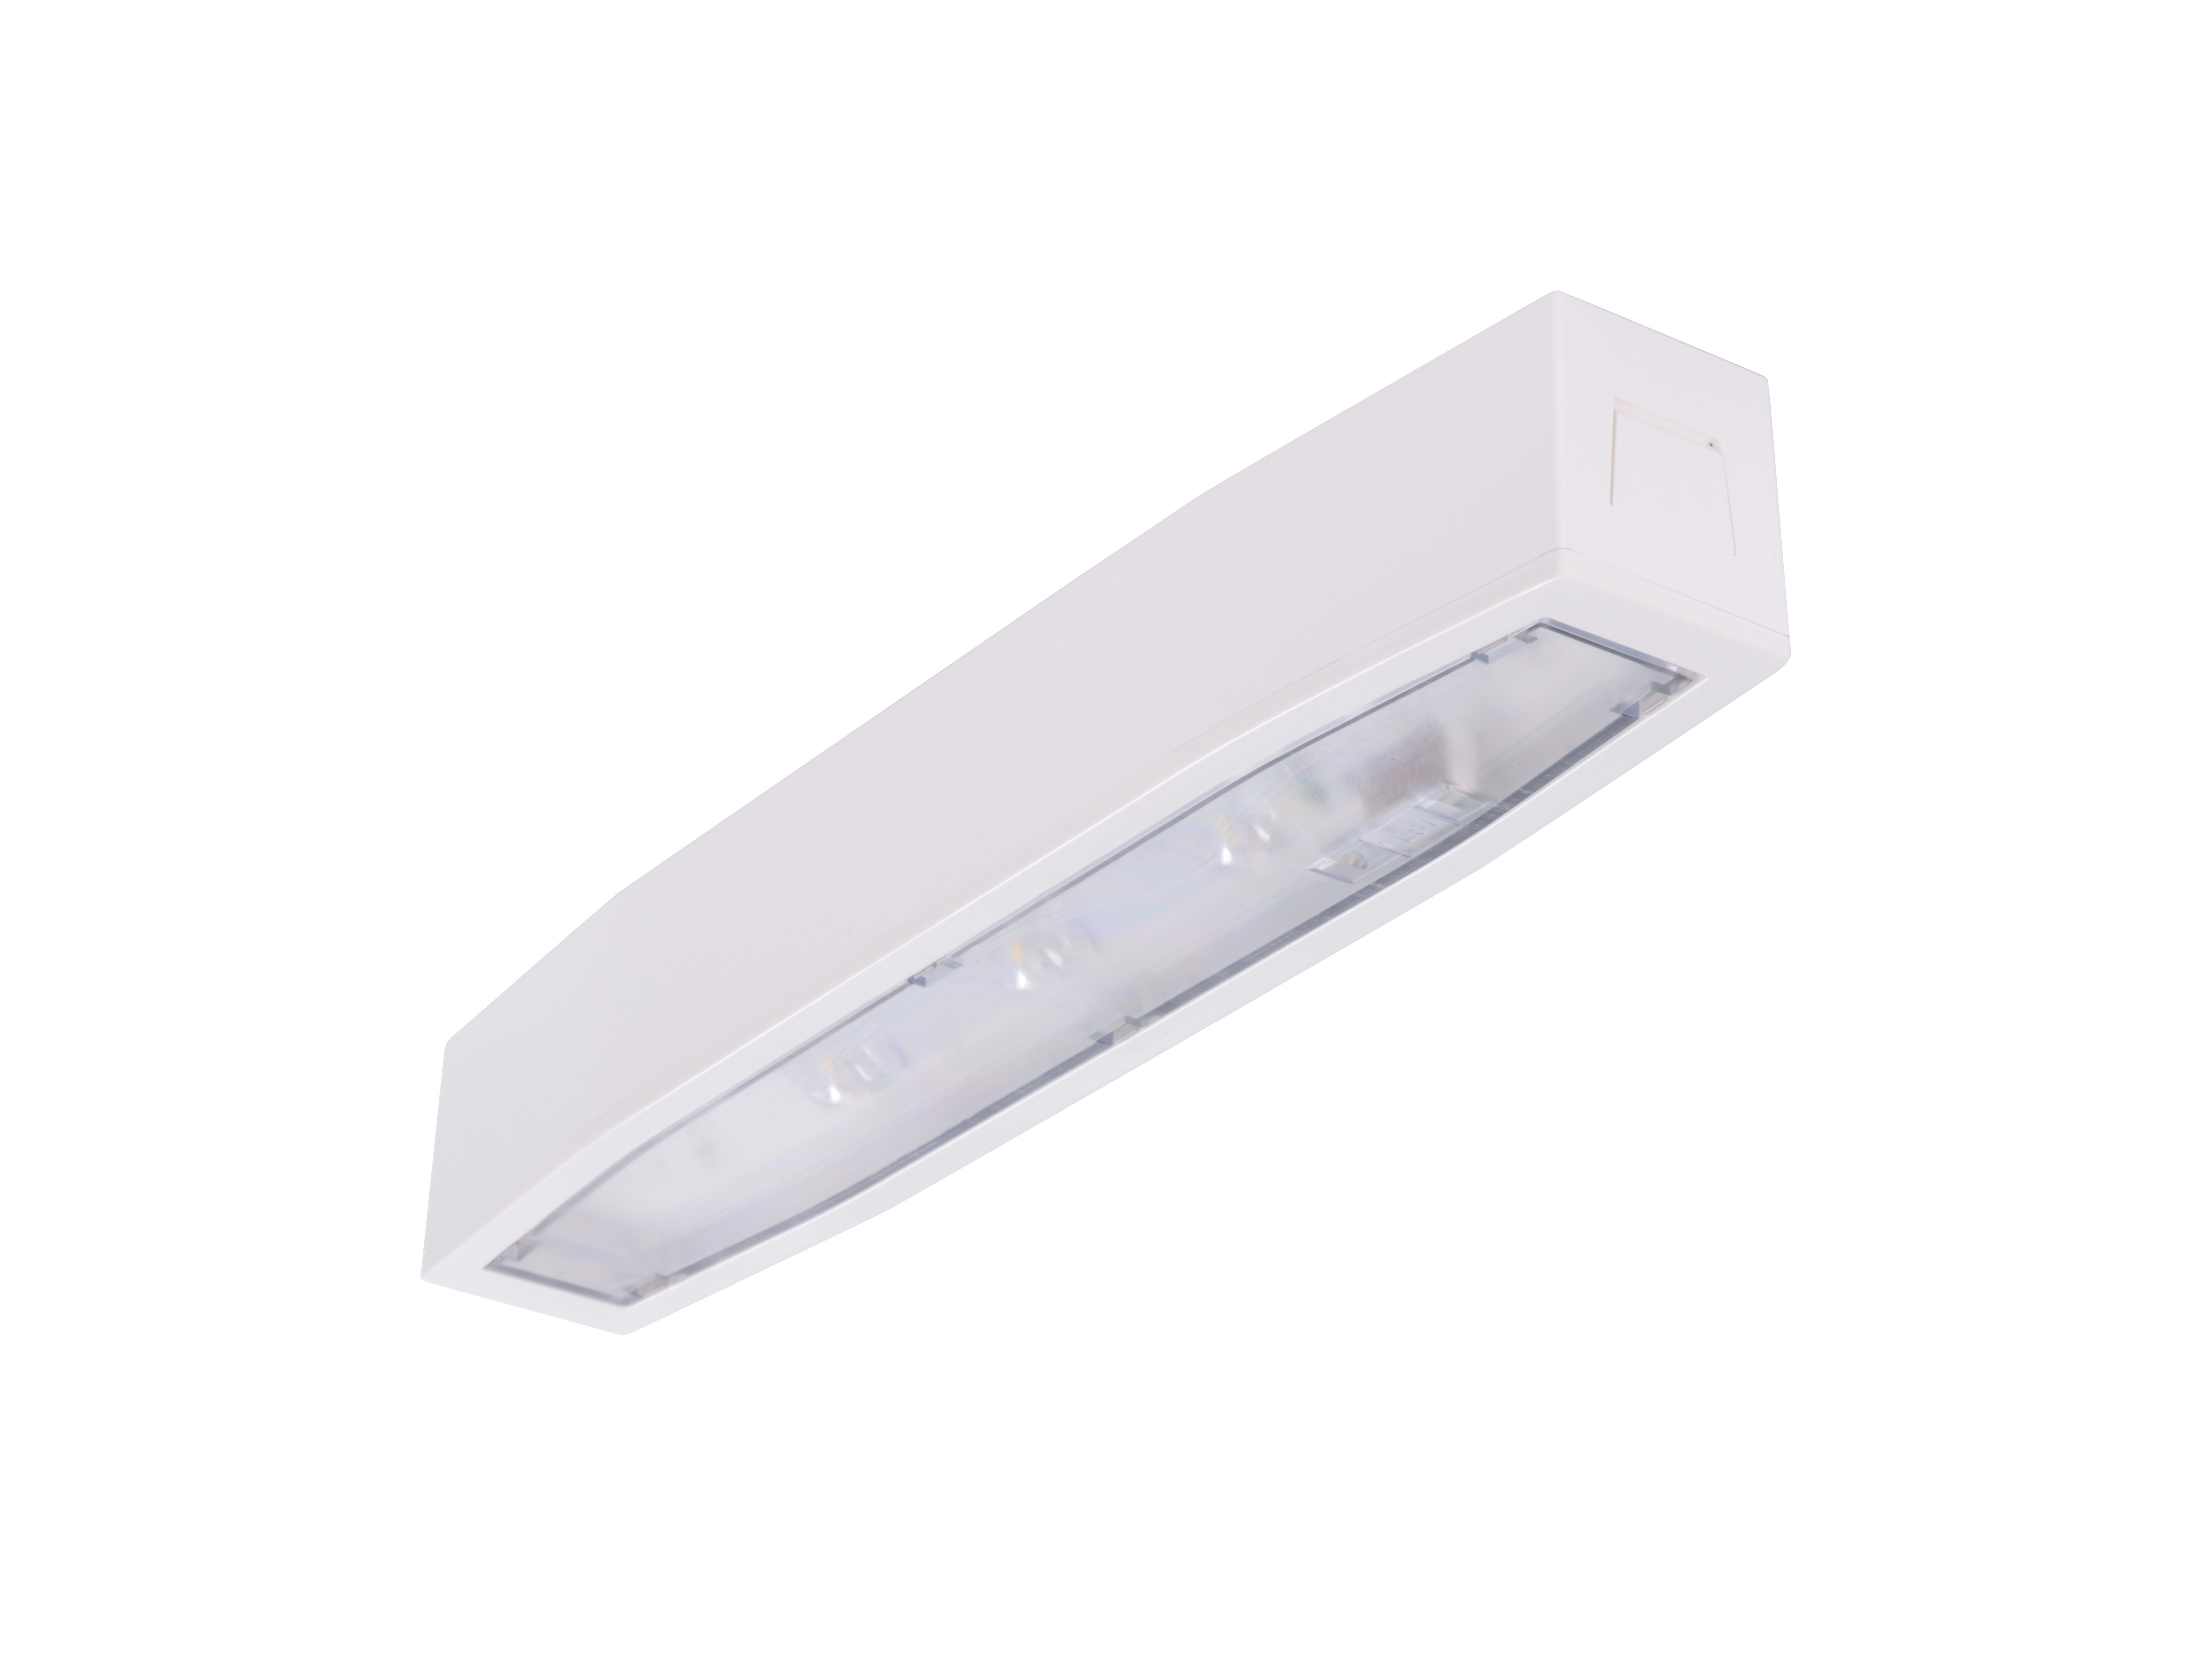 Lampa antipanica led Intelight 94573   3h nementinut test automat 0